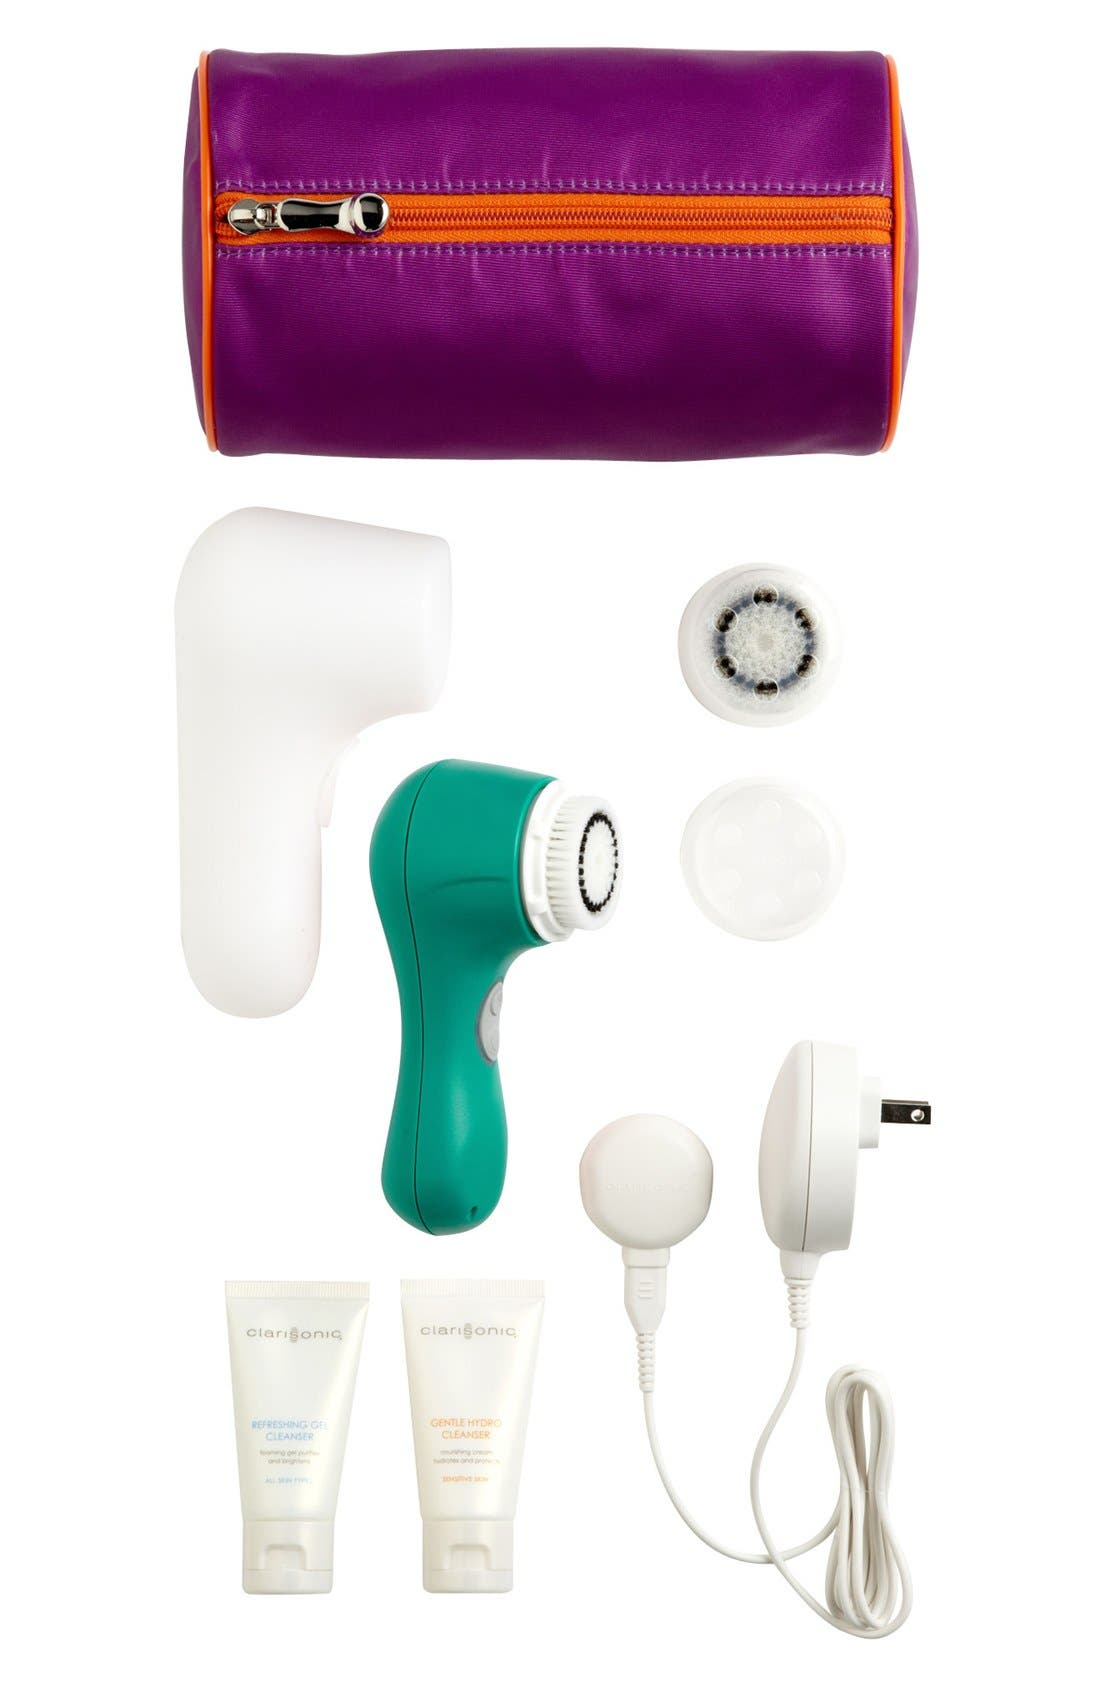 'Mia 2 - Orchid' Sonic Skin Cleansing System,                             Main thumbnail 1, color,                             300